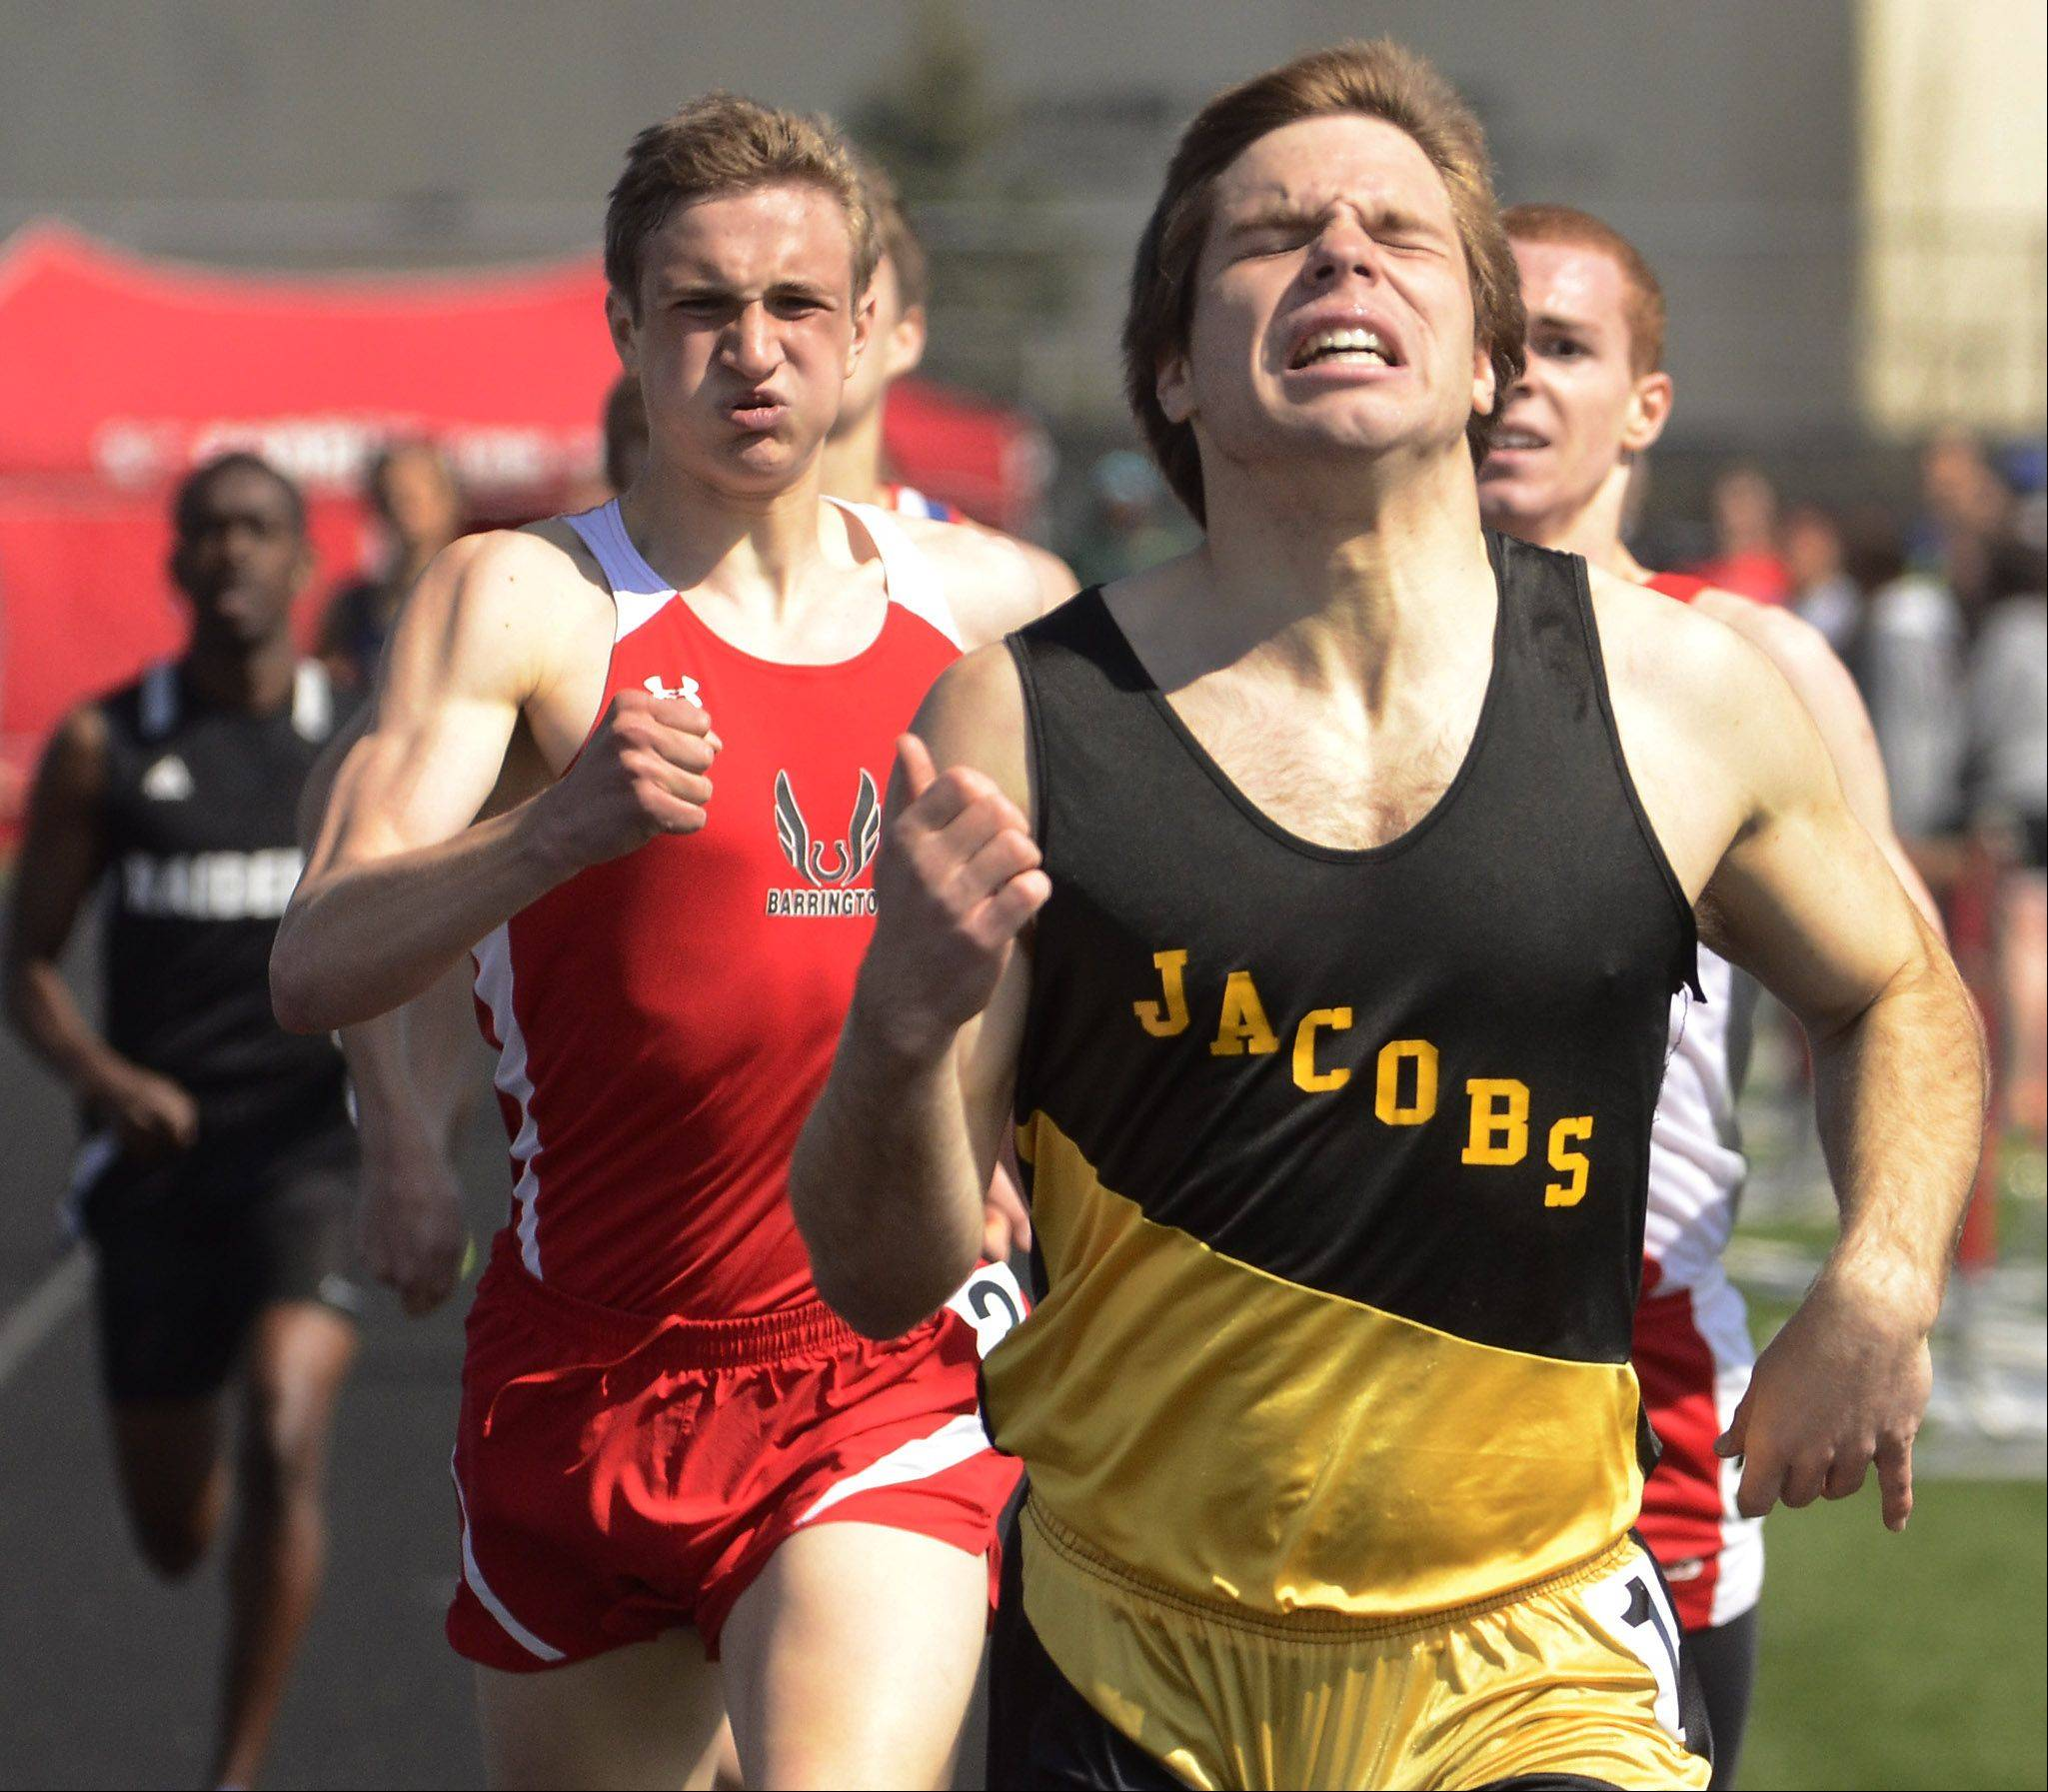 Nick Matysek of Jacobs winning the 800-meter run at the Palatine Relays.